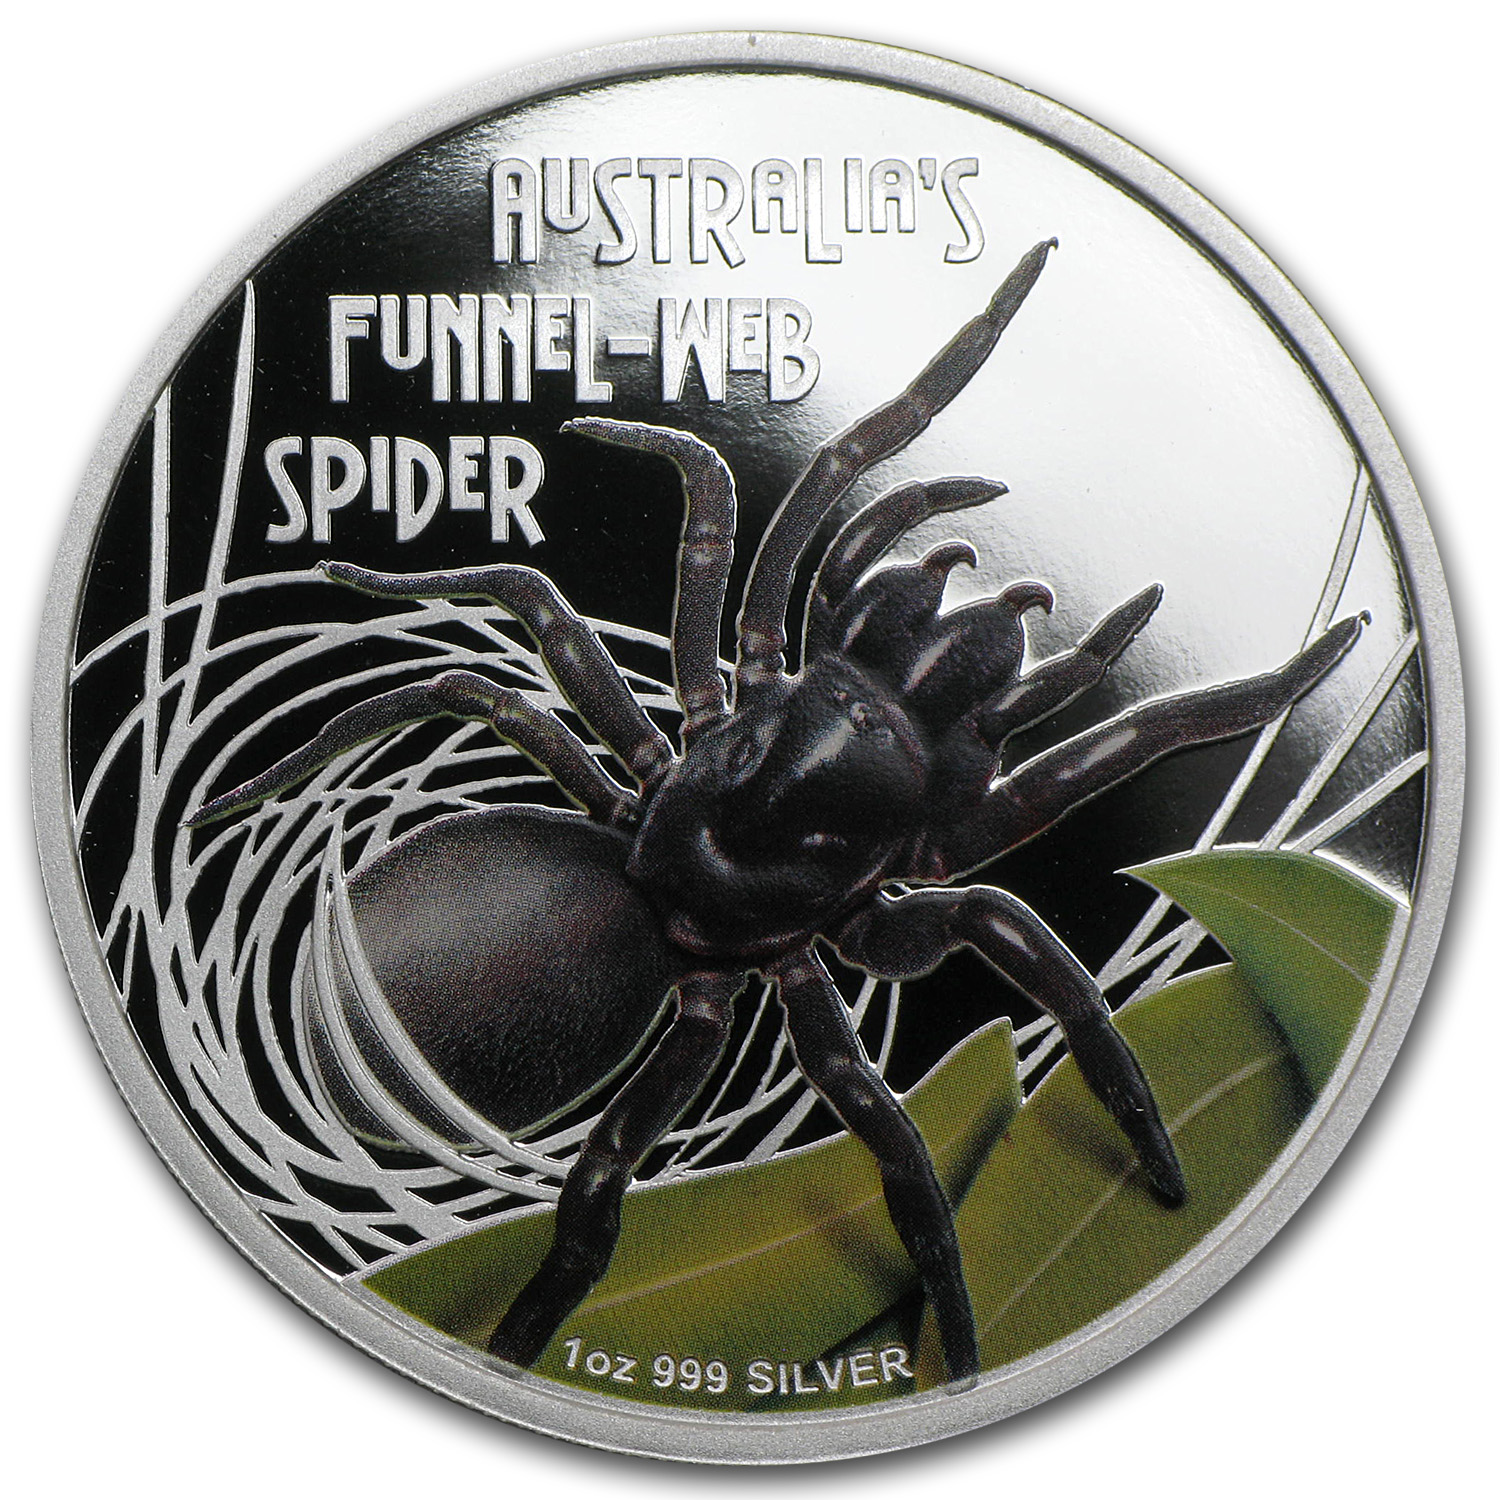 2012 Australia 1 oz Silver Funnel Web Spider Proof